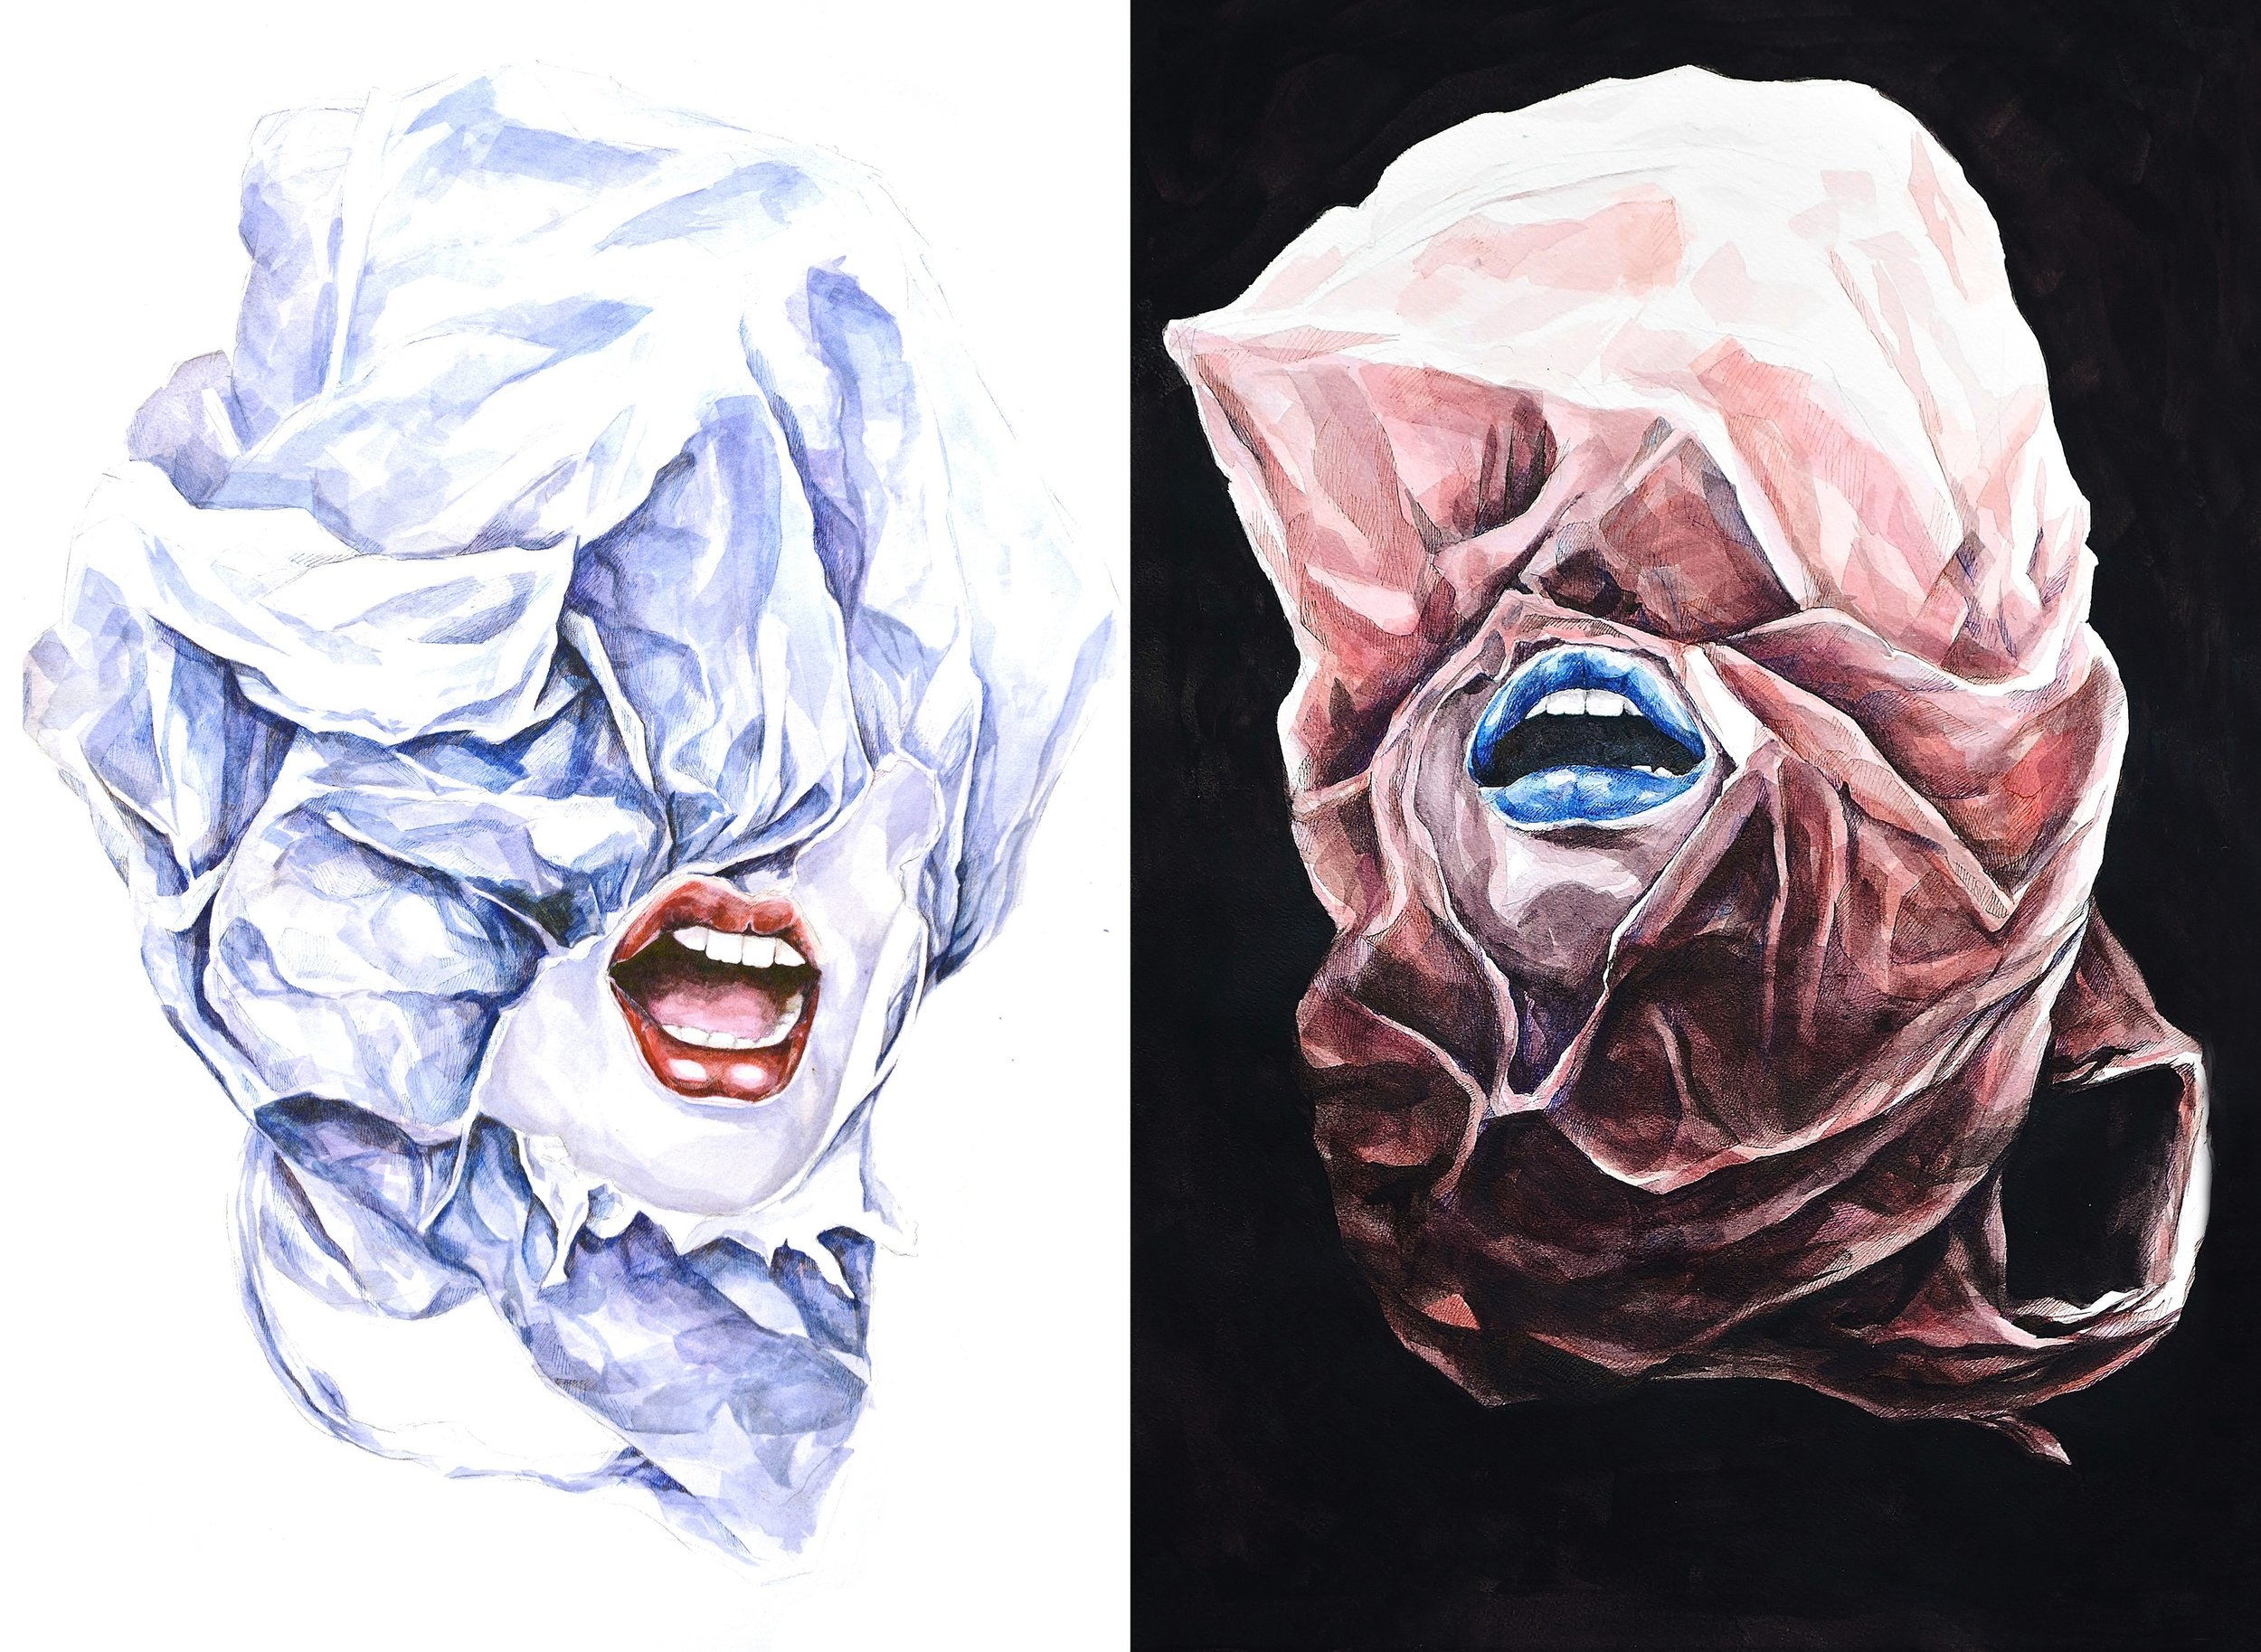 Plastic | Ink and watercolor on paper | 2014